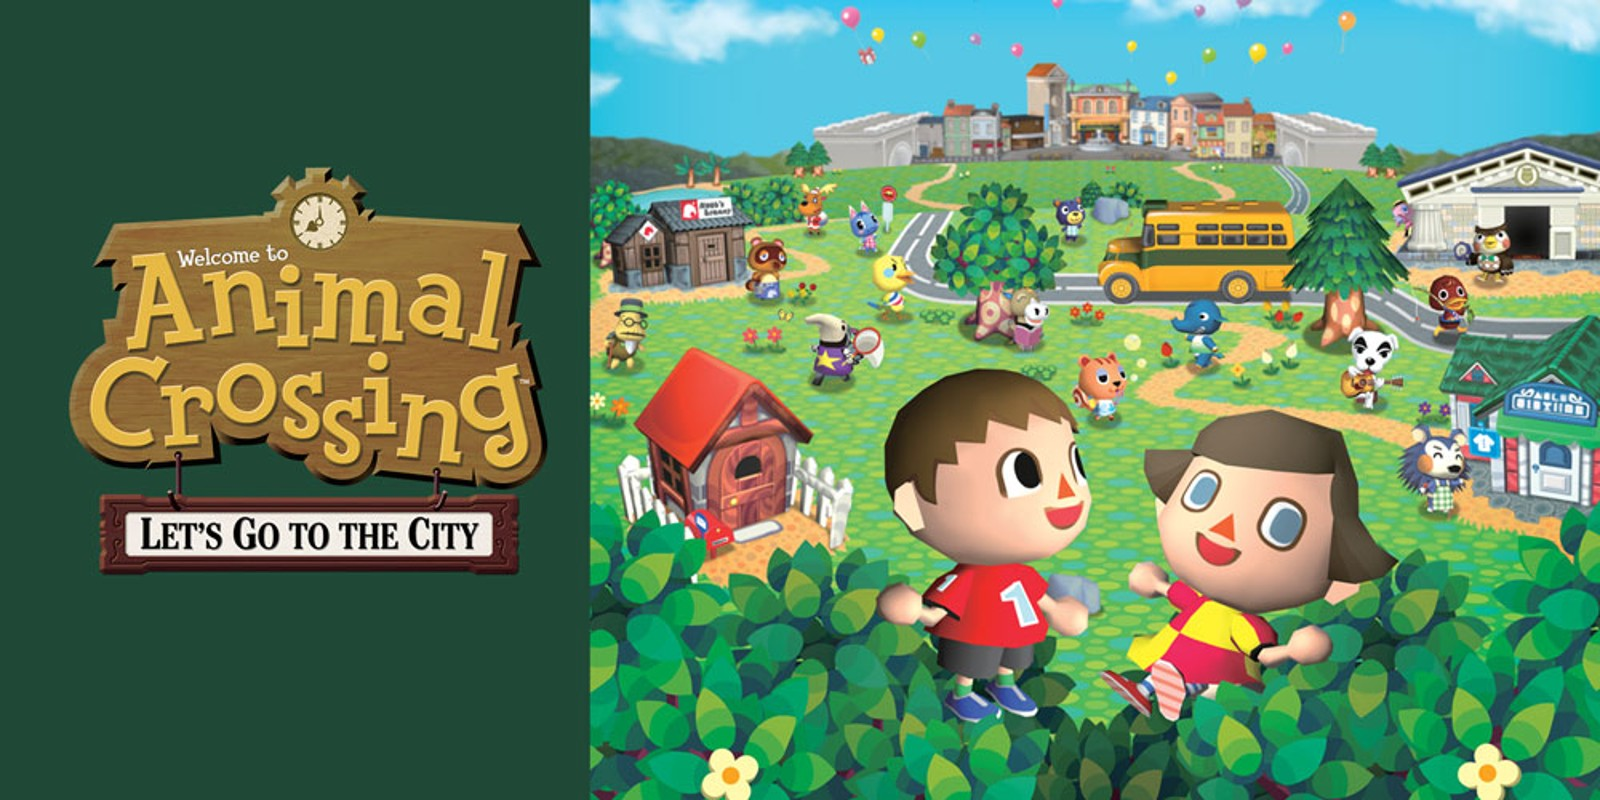 Animal Crossing Wild World Wallpaper Animal Crossing Let S Go To The City Wii Giochi